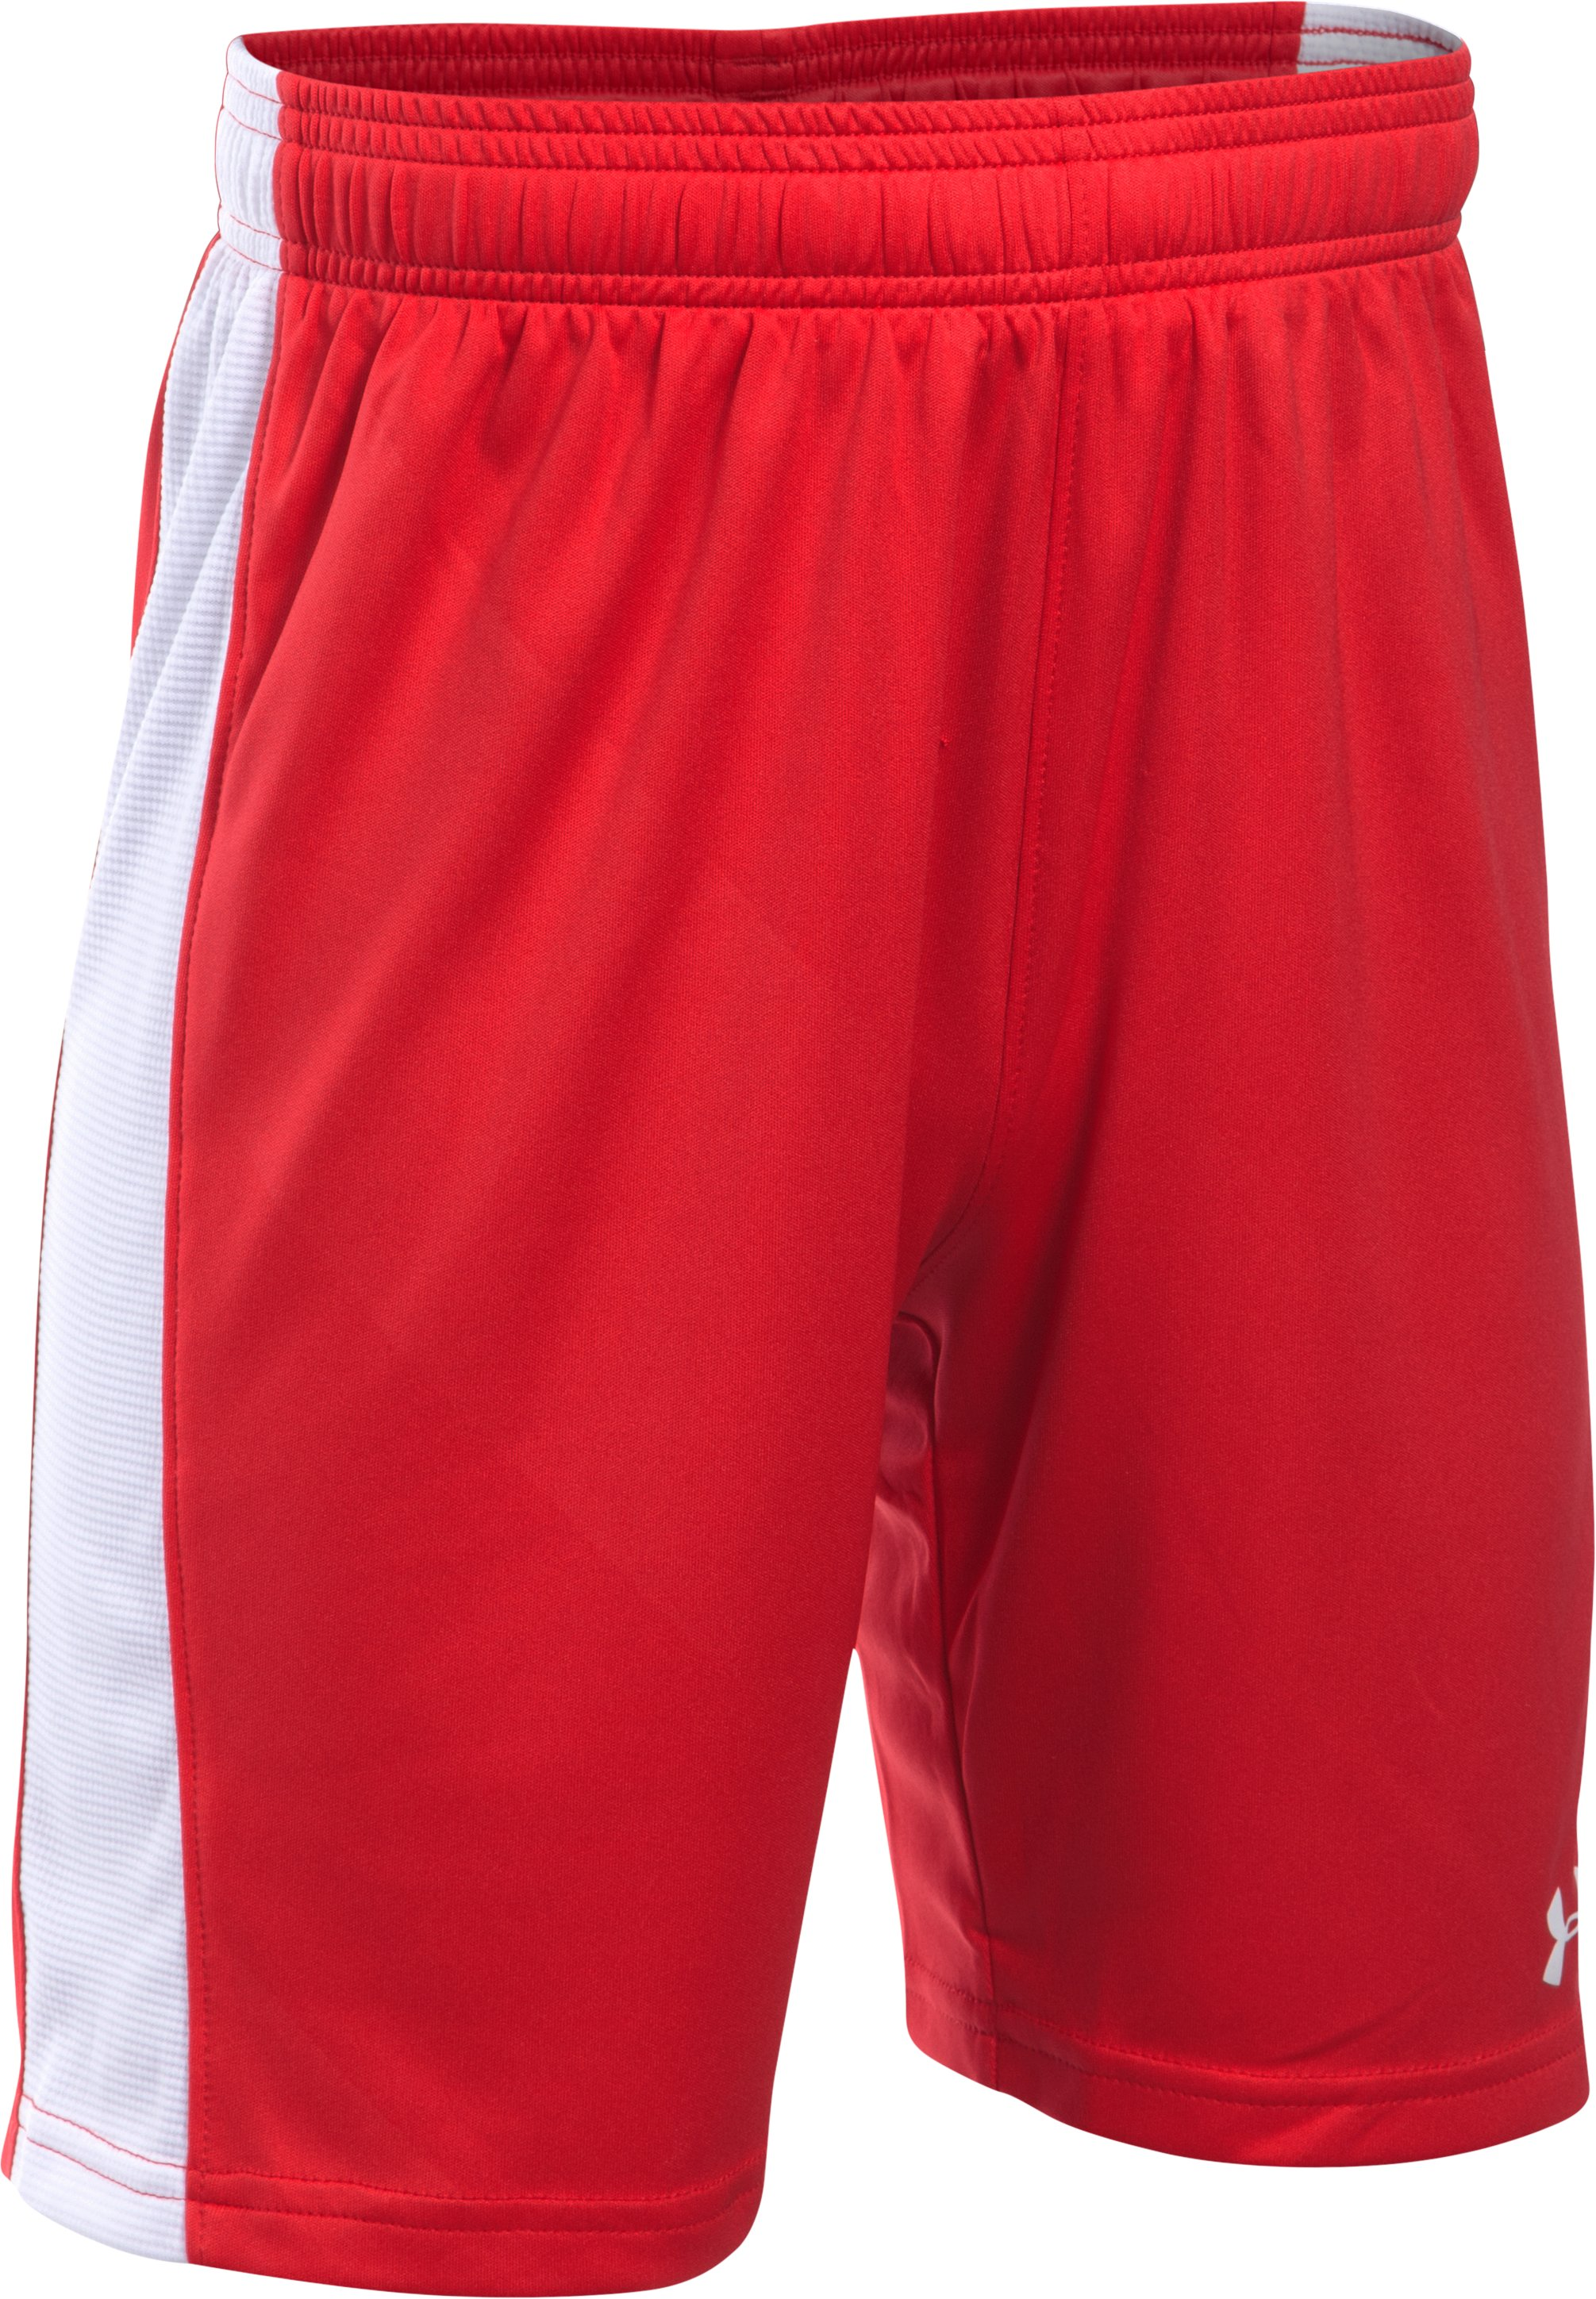 Boys' UA Re-Fixture Soccer Shorts, Red,